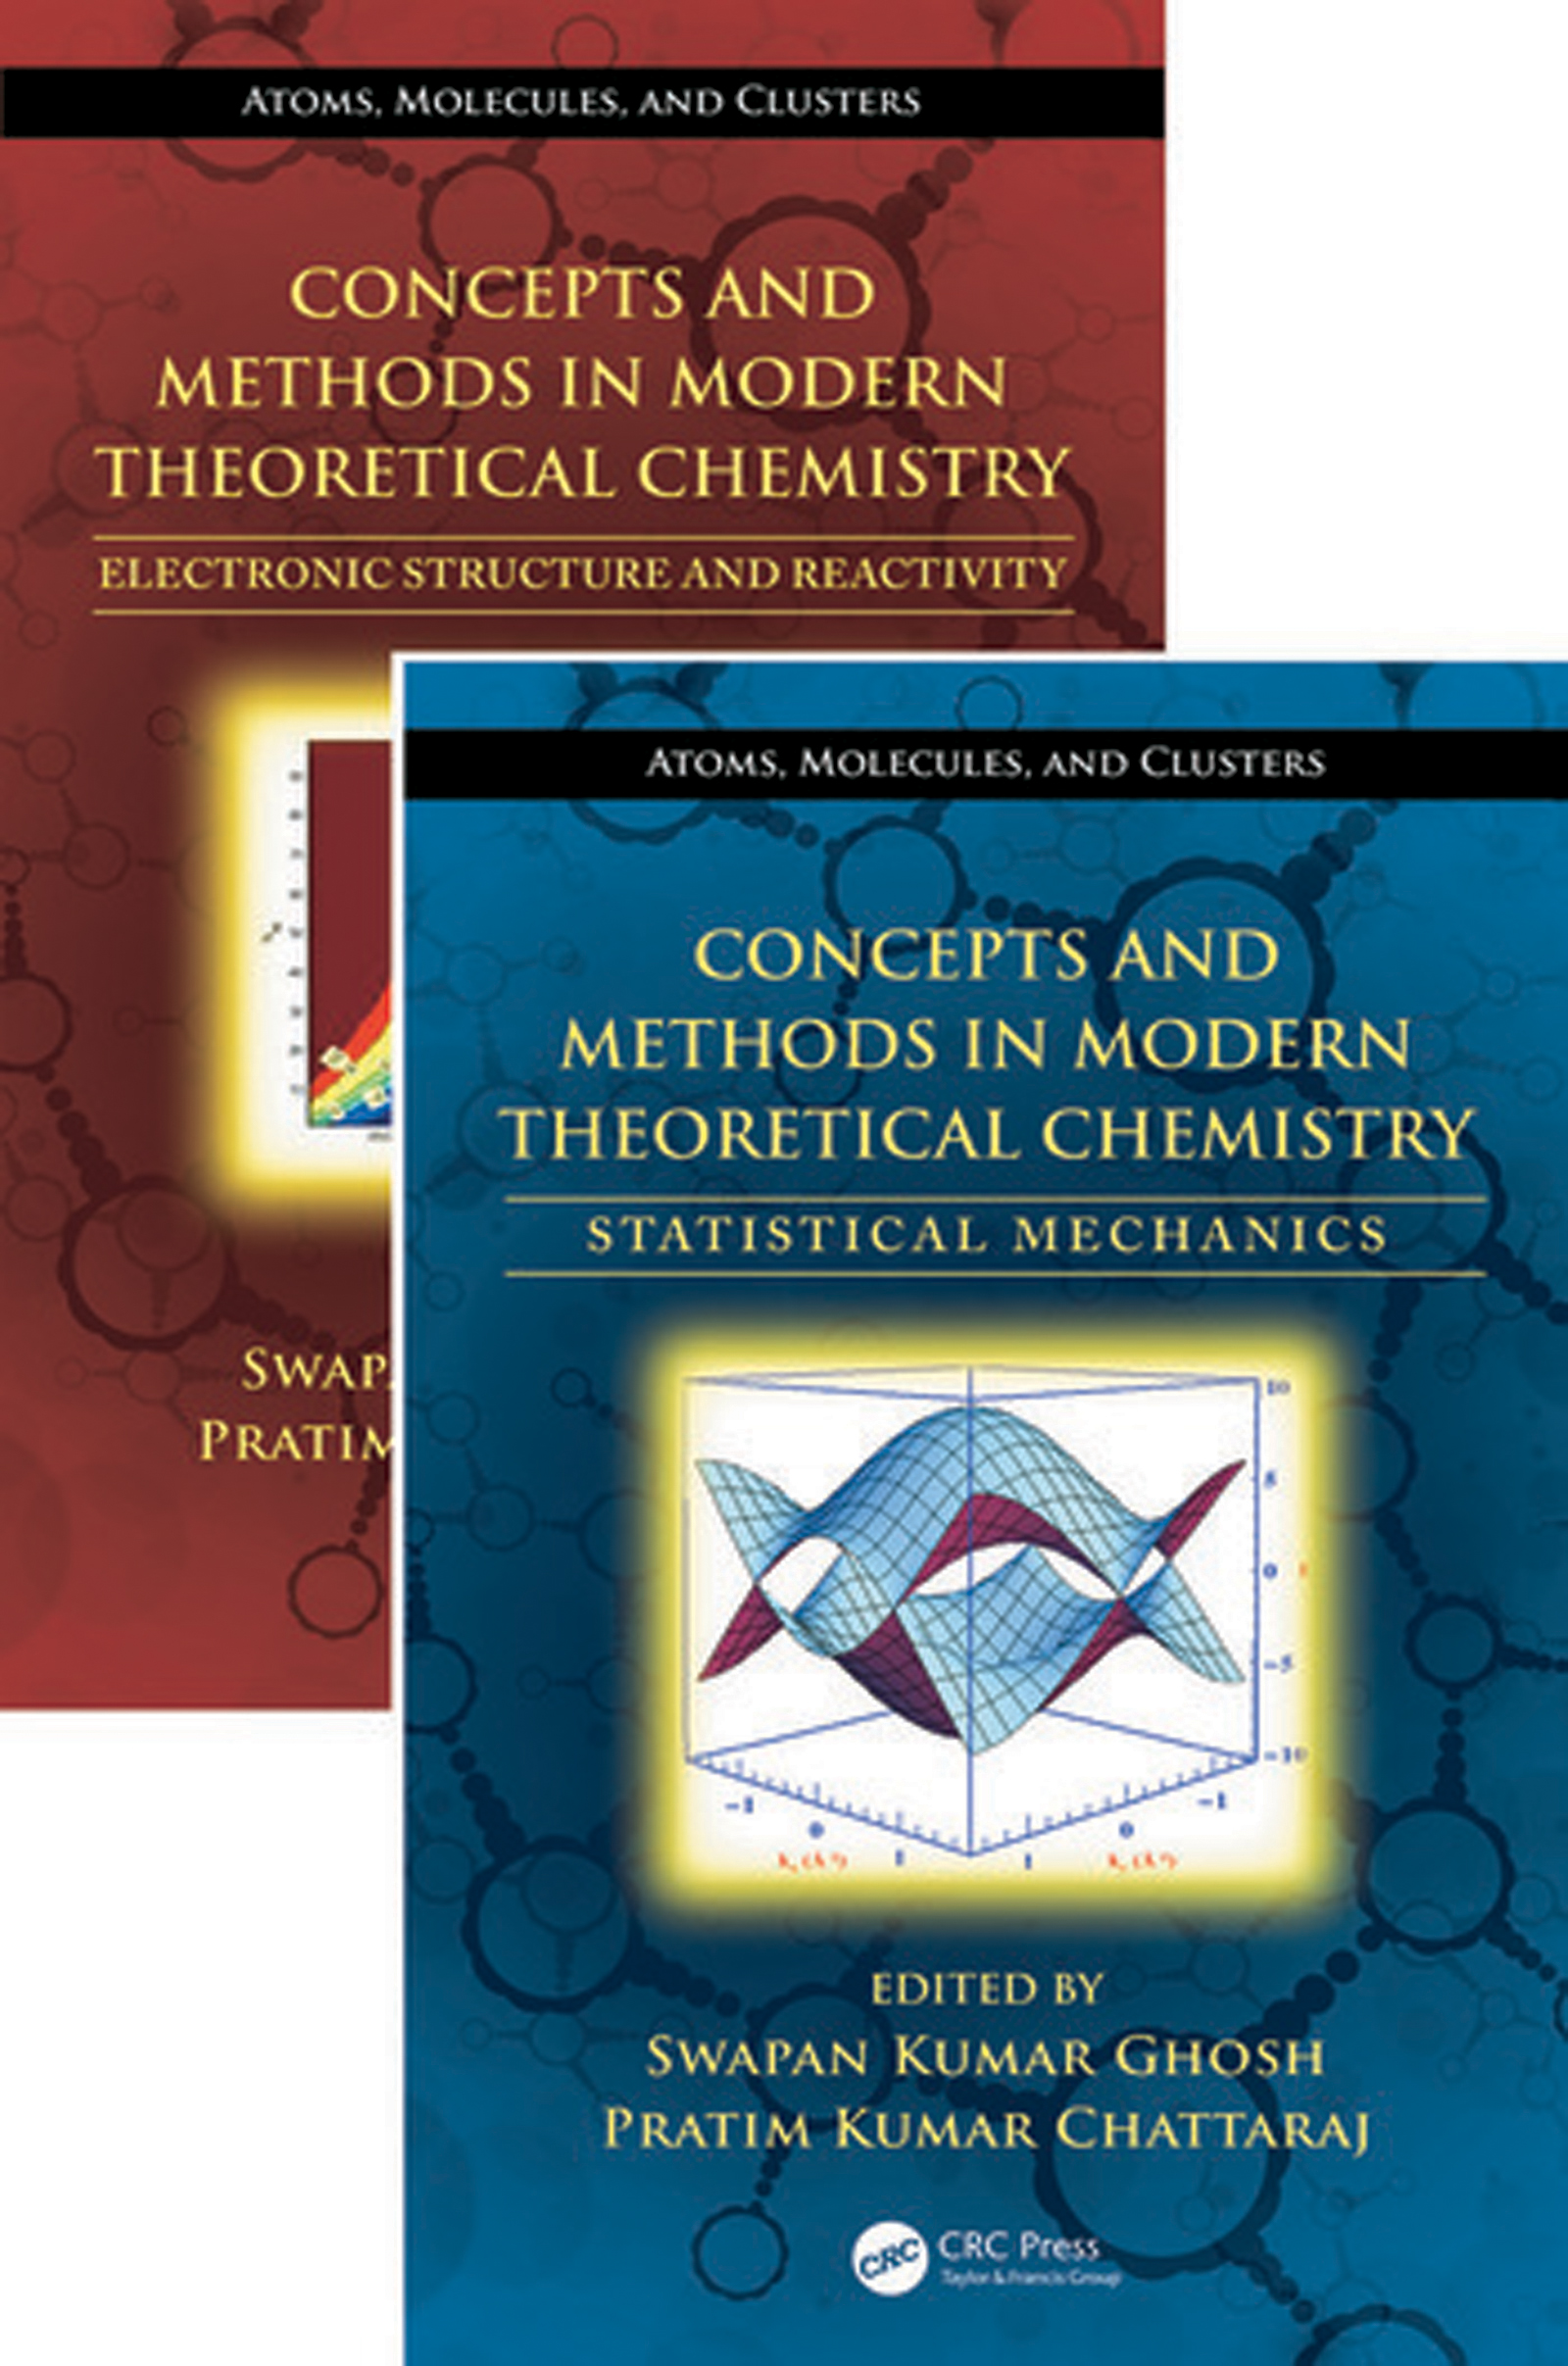 Concepts and Methods in Modern Theoretical Chemistry, Two Volume Set